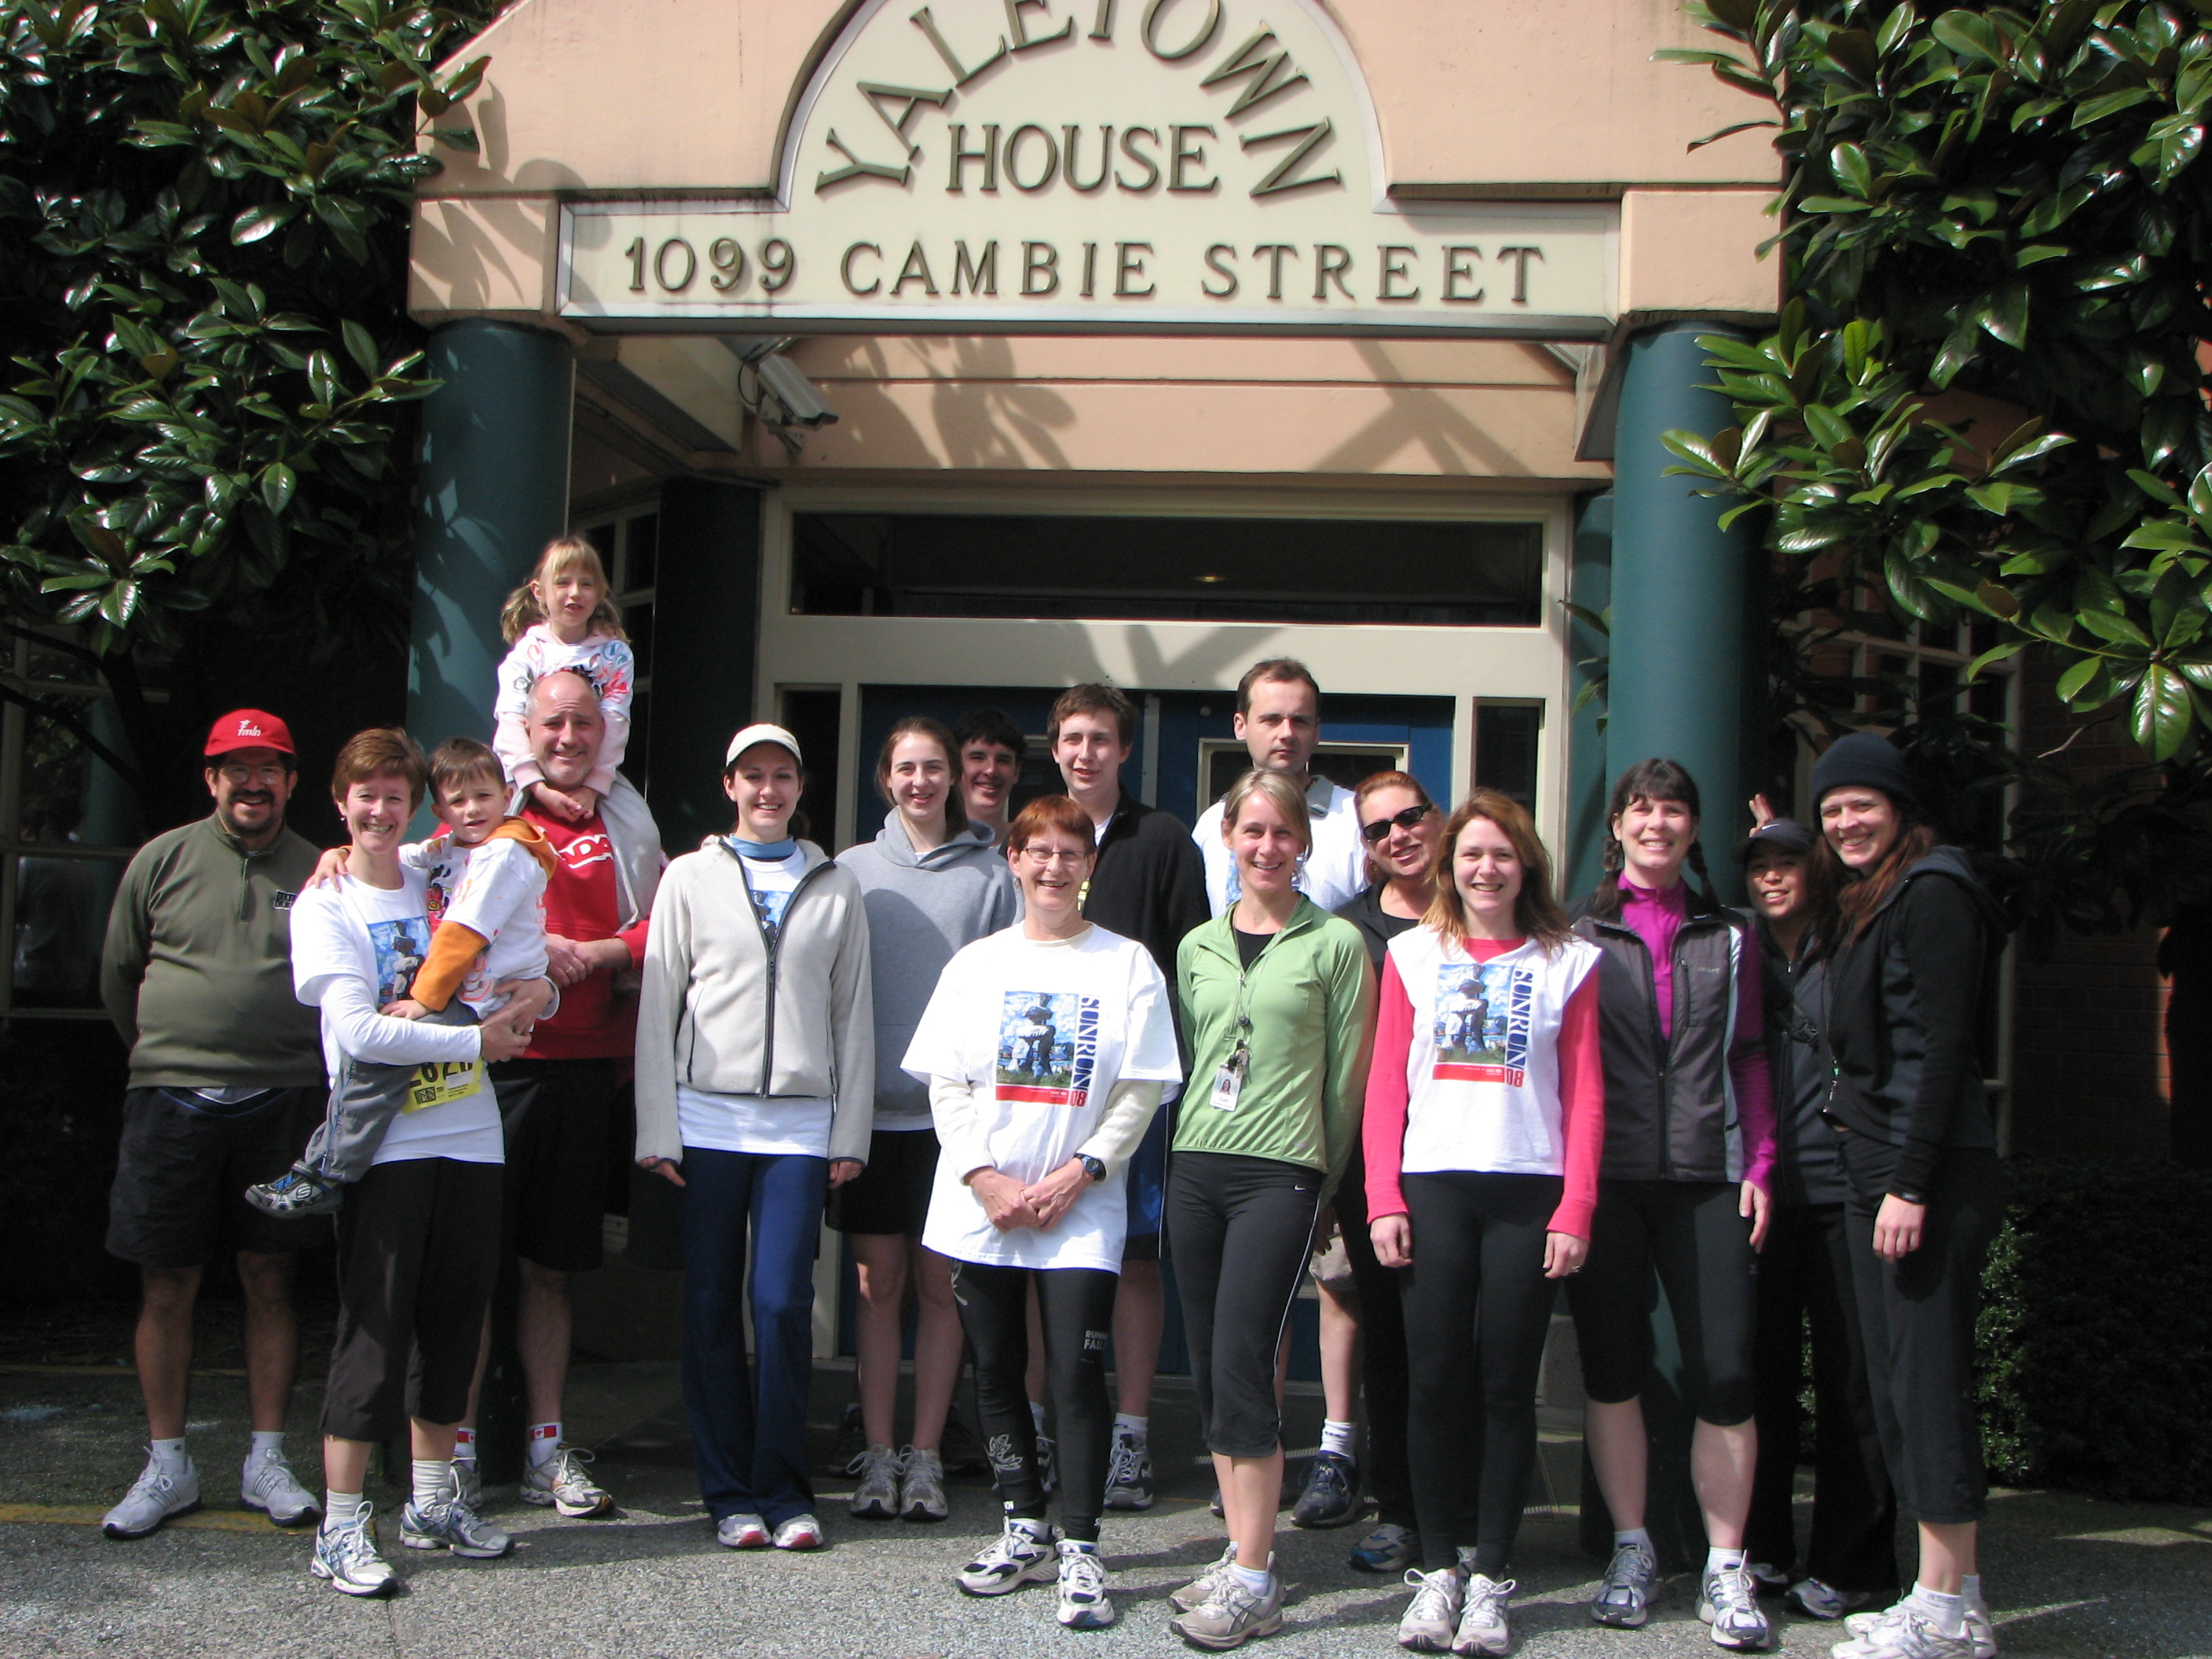 Possibly the coldest Sun Run in its 24 year History – but that didn't stop the Yaletown House Team